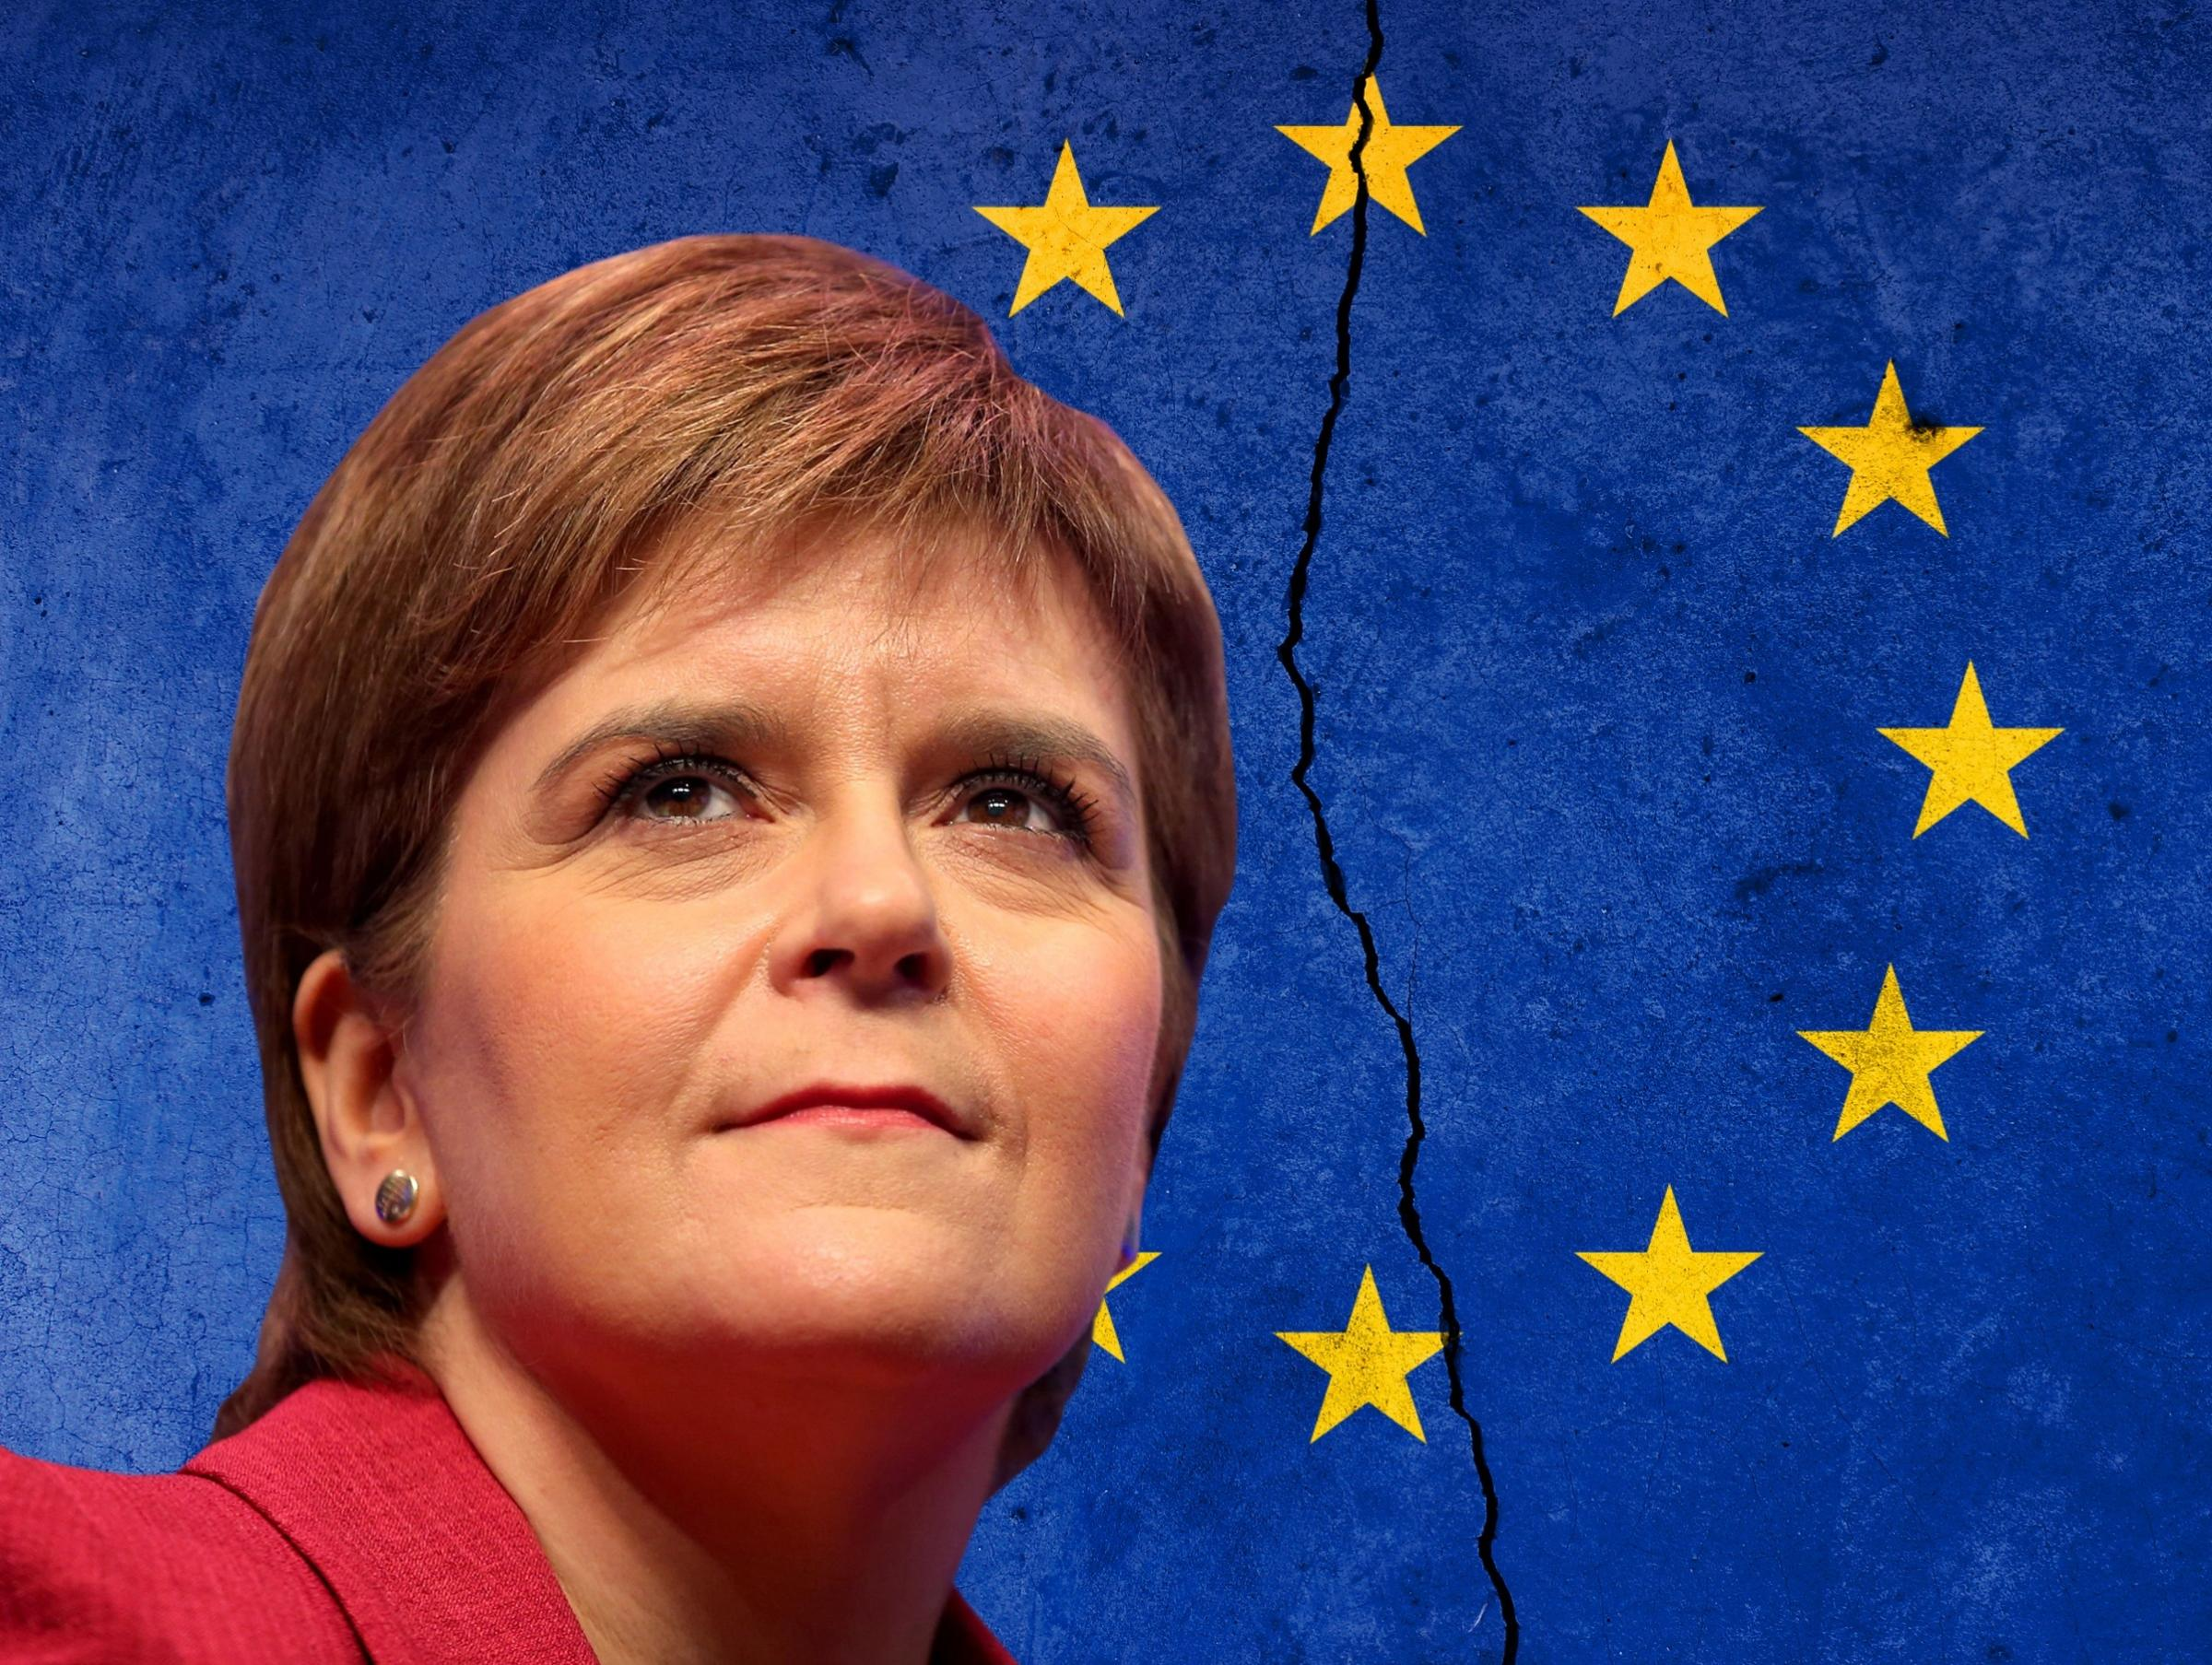 The First Minister has not backed a second EU referendum